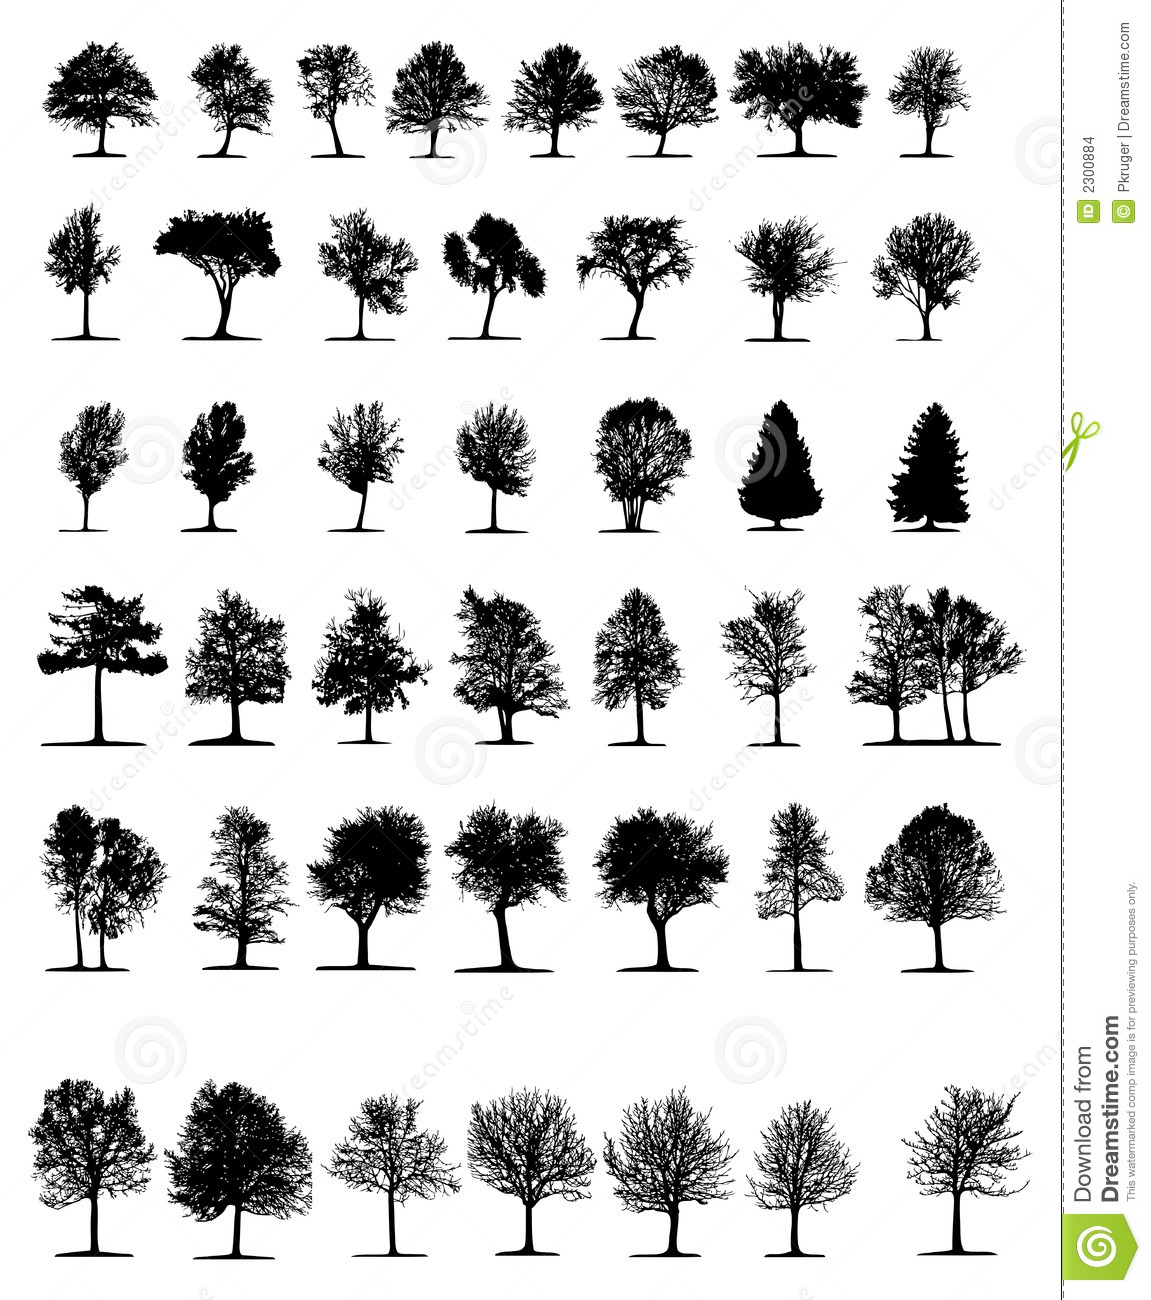 Pine Tree PNG and PSD Free Download  Pine Tree Clip art